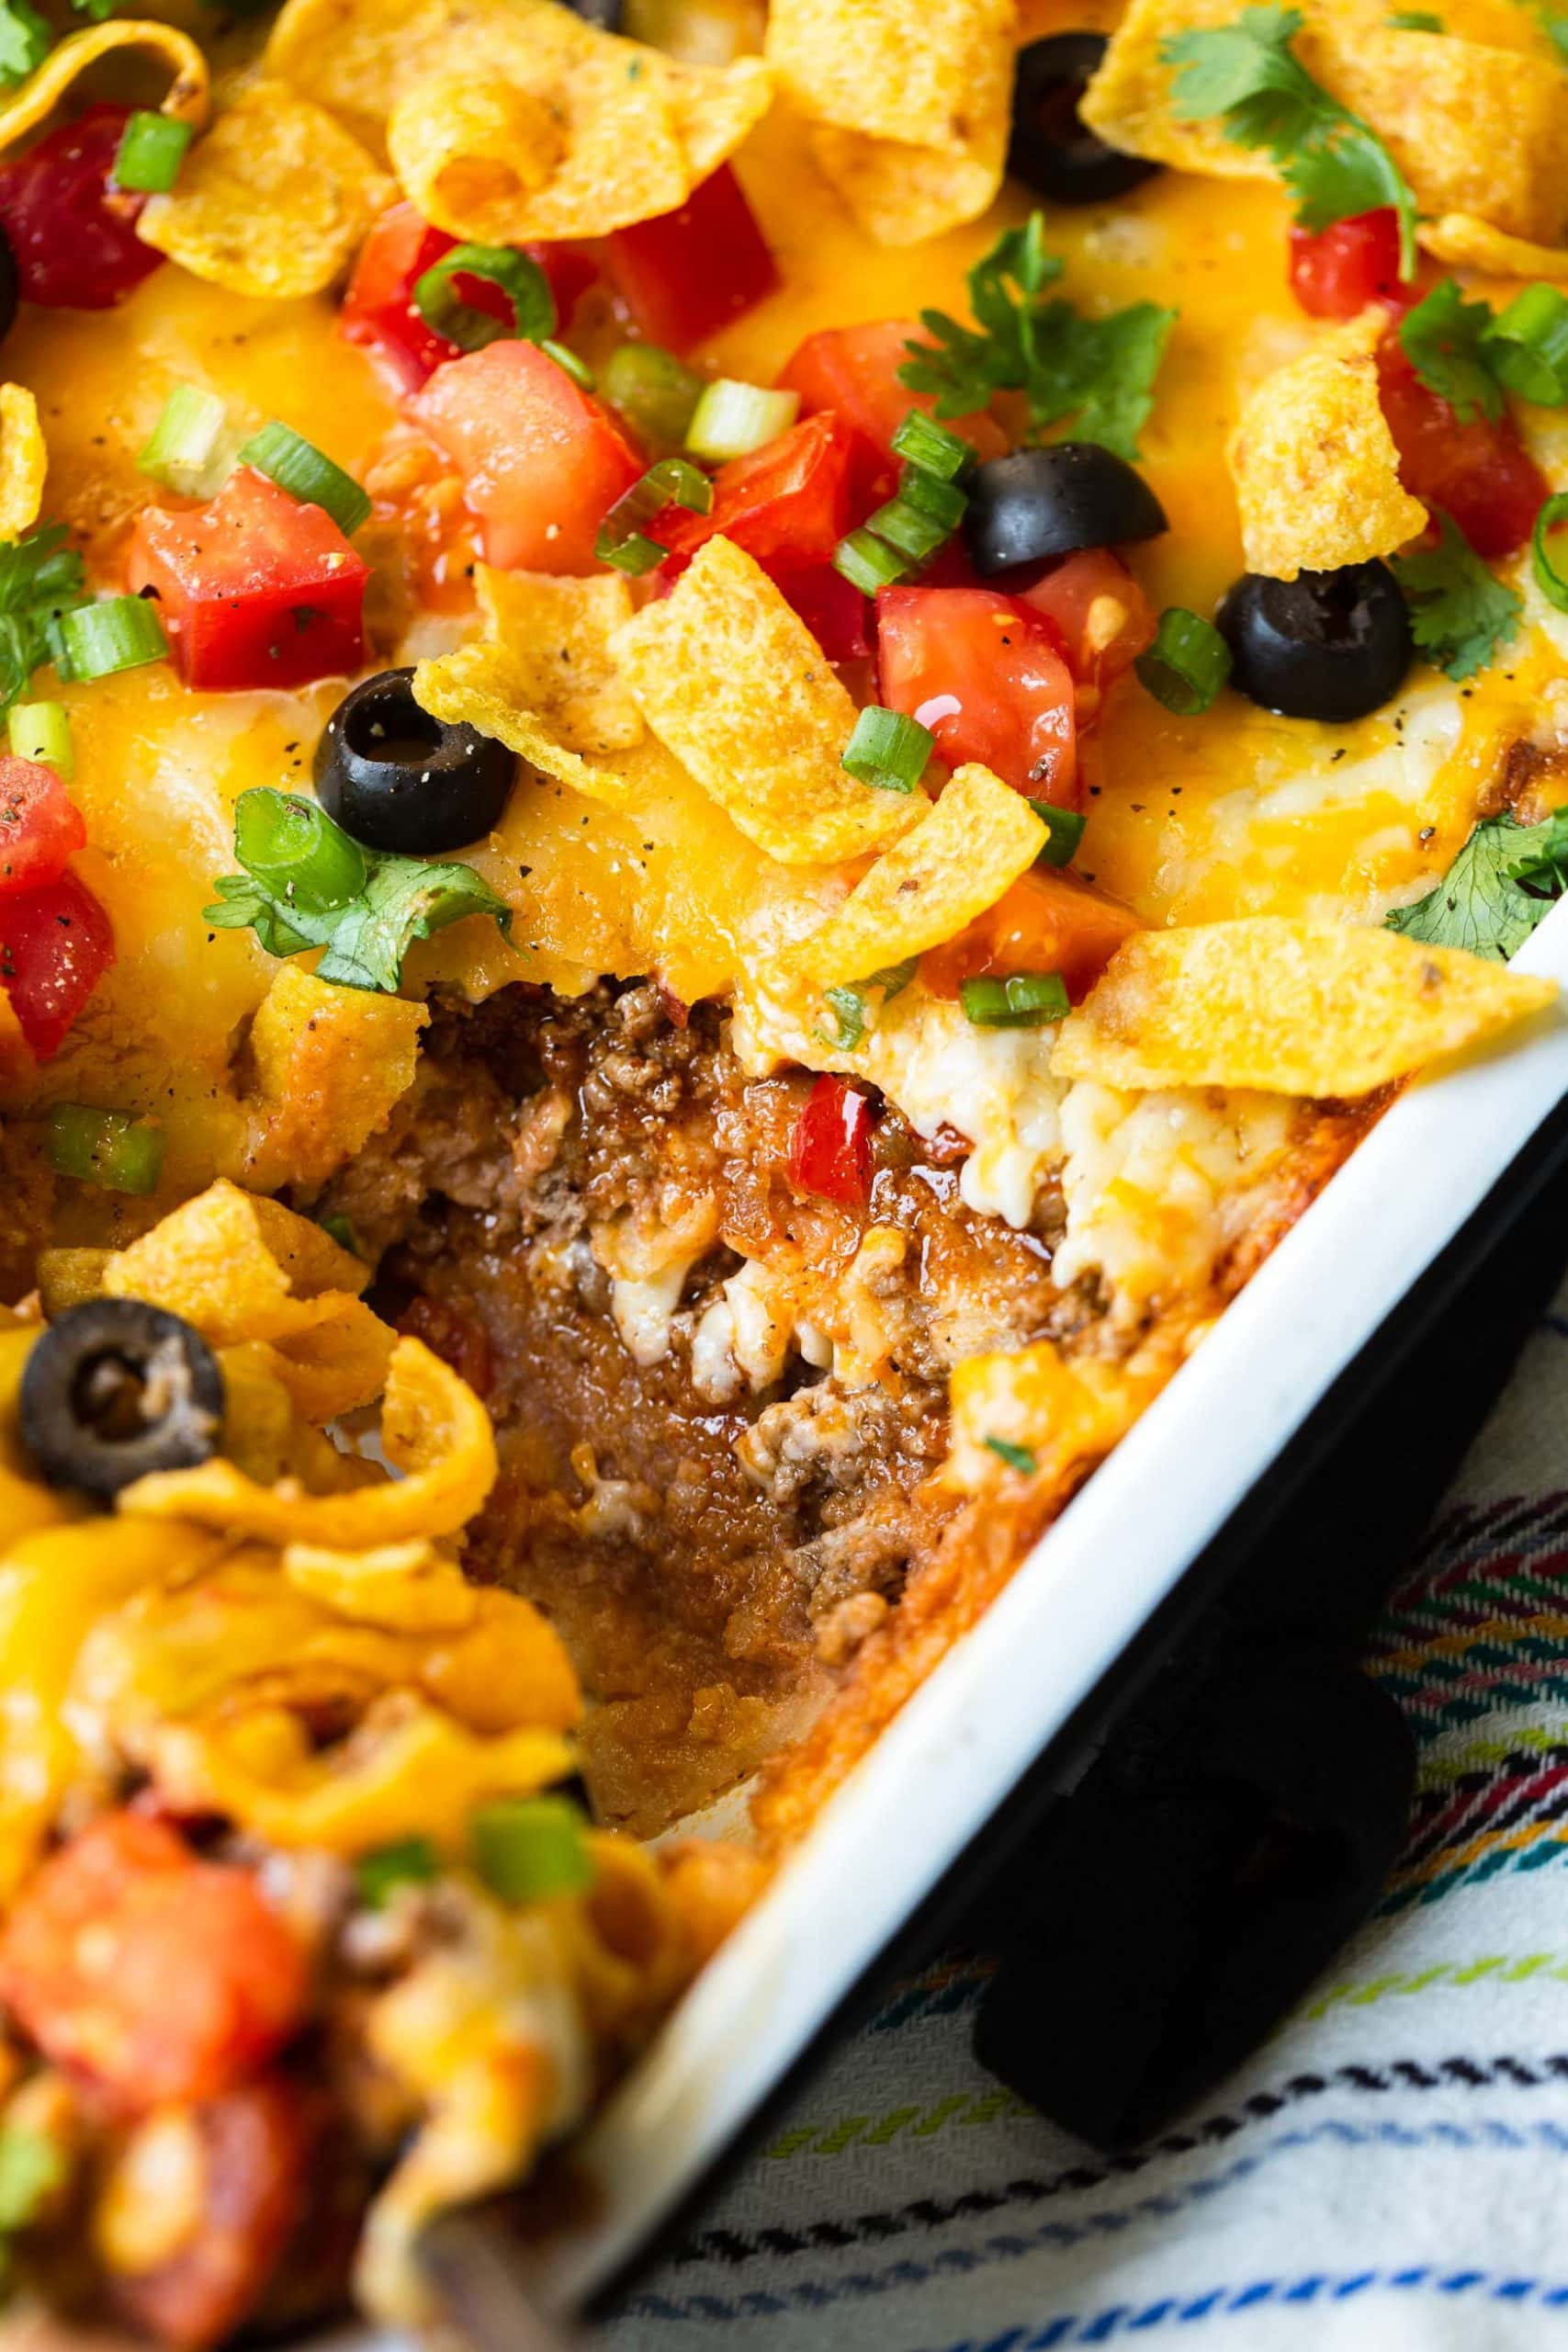 a close up photo of a taco casserole in the dish and one piece is missing so you can see the layer inside.